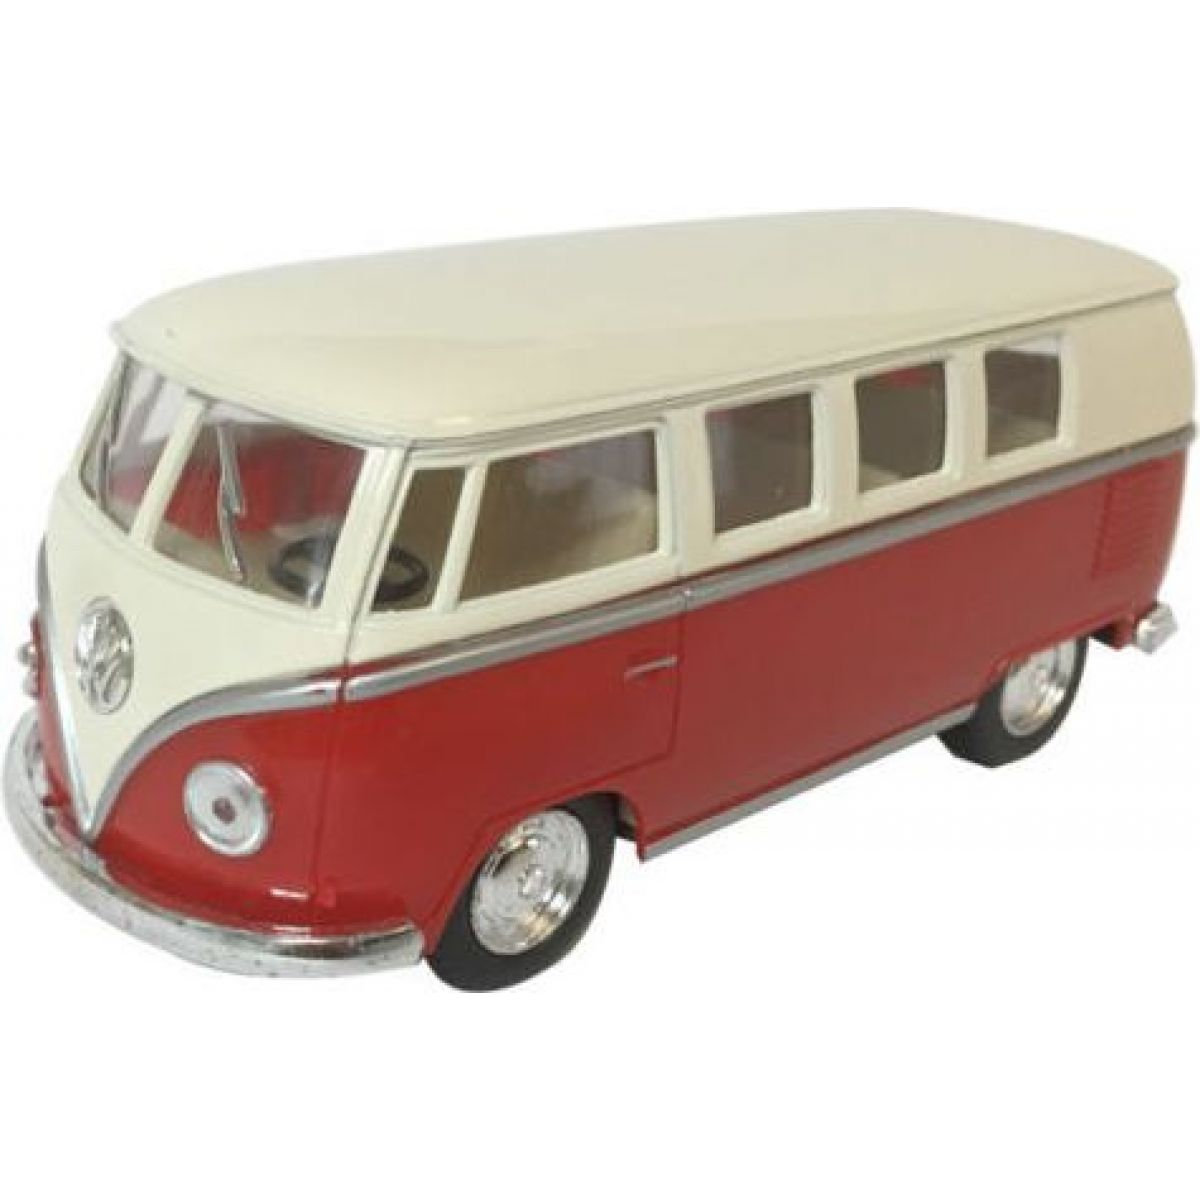 HM Studio VW Classical Bus Ivory Top 1962 červený